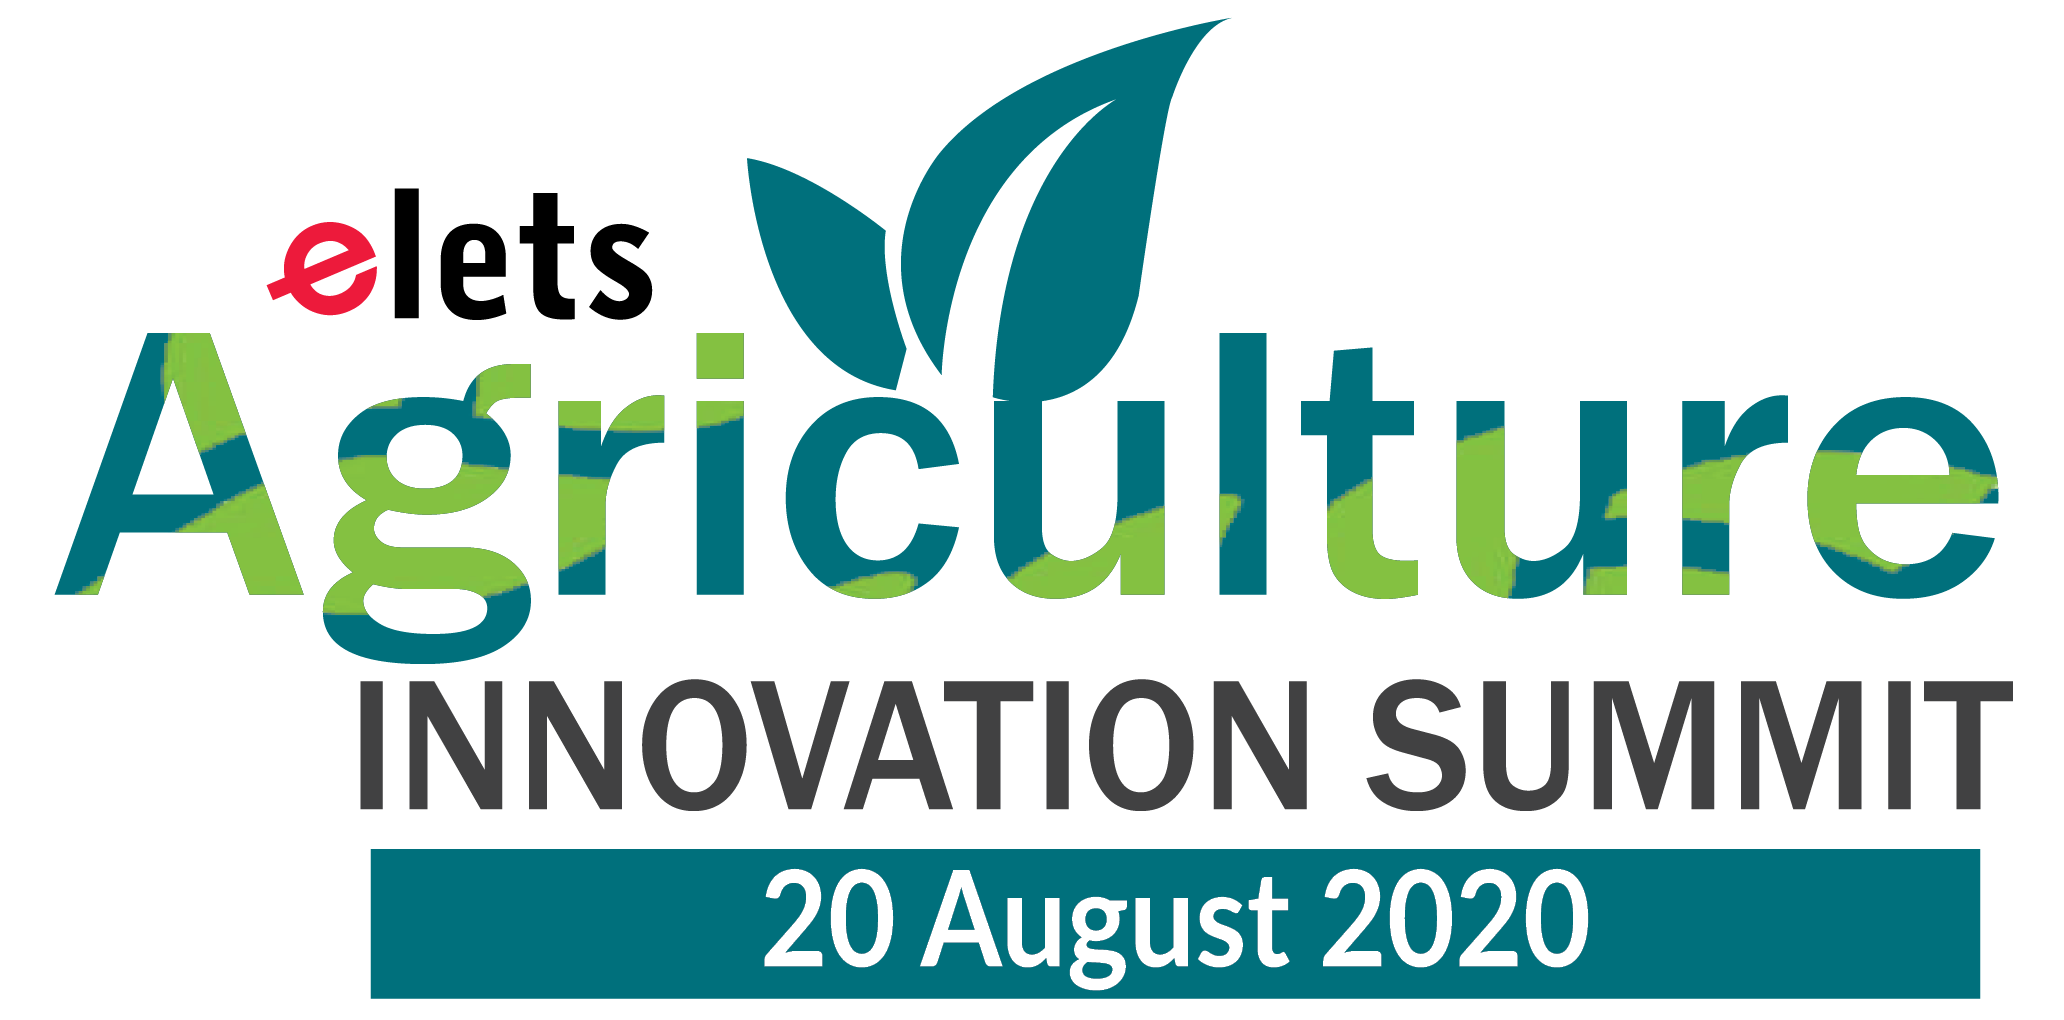 Agriculture Innovation Summit